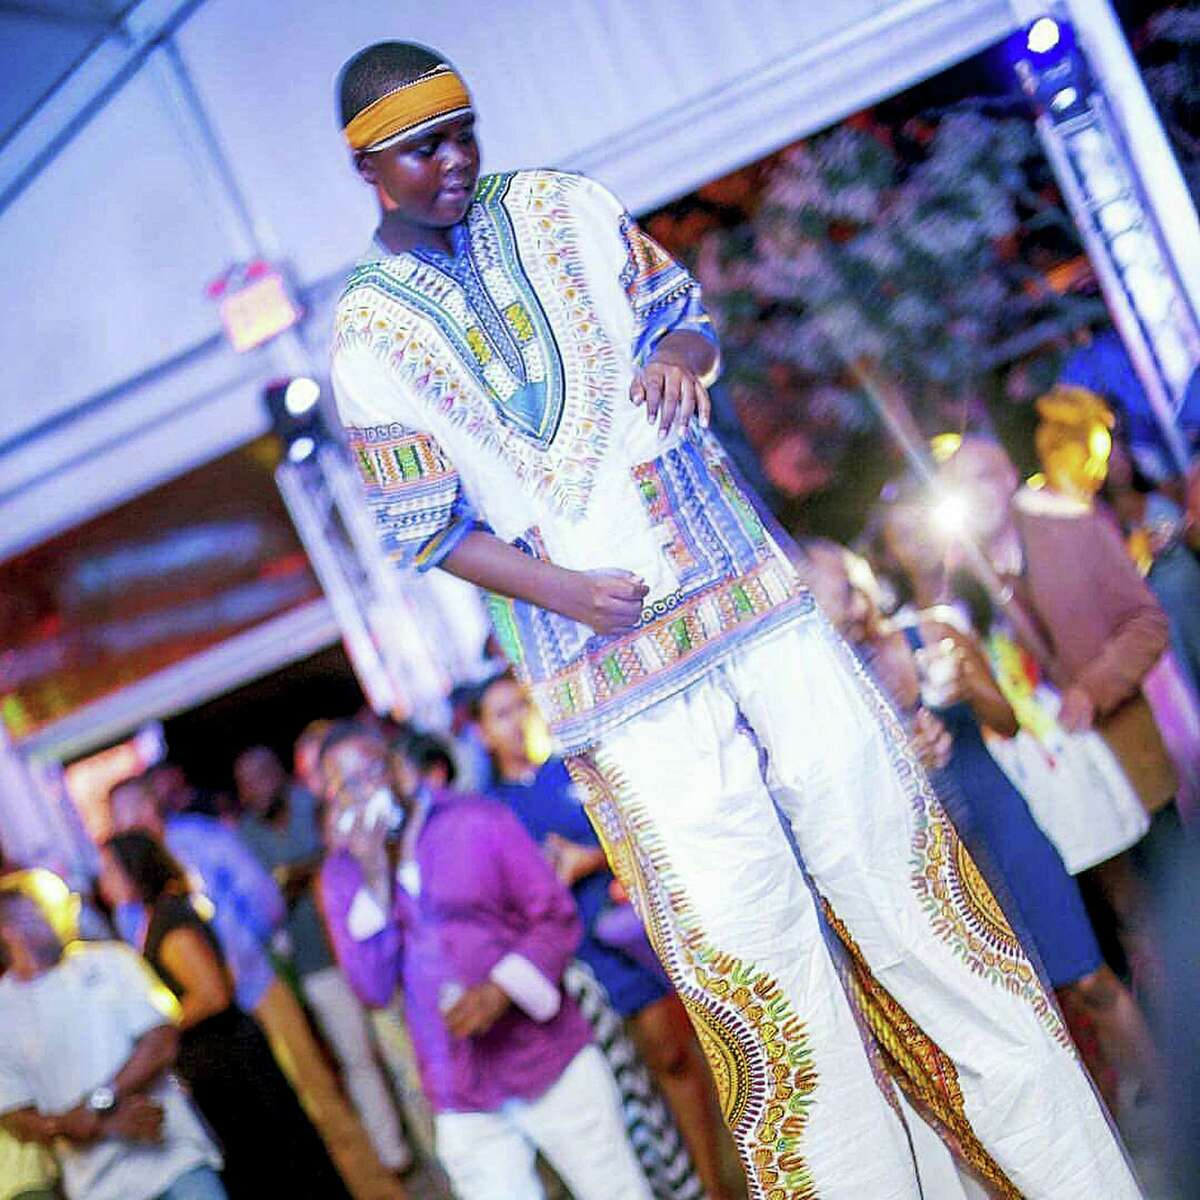 """Nyles Adams, 14, takes part in the Trinidad tradition of stilt-walking, called """"moko jumbies,"""" in this July, 2016 photo at the Marine Park Golf Course in Brooklyn, N.Y. Adams was one of 790 teenagers between the ages of 13 and 17 who participated in a first-of-its-kind Associated Press-NORC Center for Public Affairs Research poll on teens' social media use, political views and political outlook. (Desma Bidjou via AP)"""